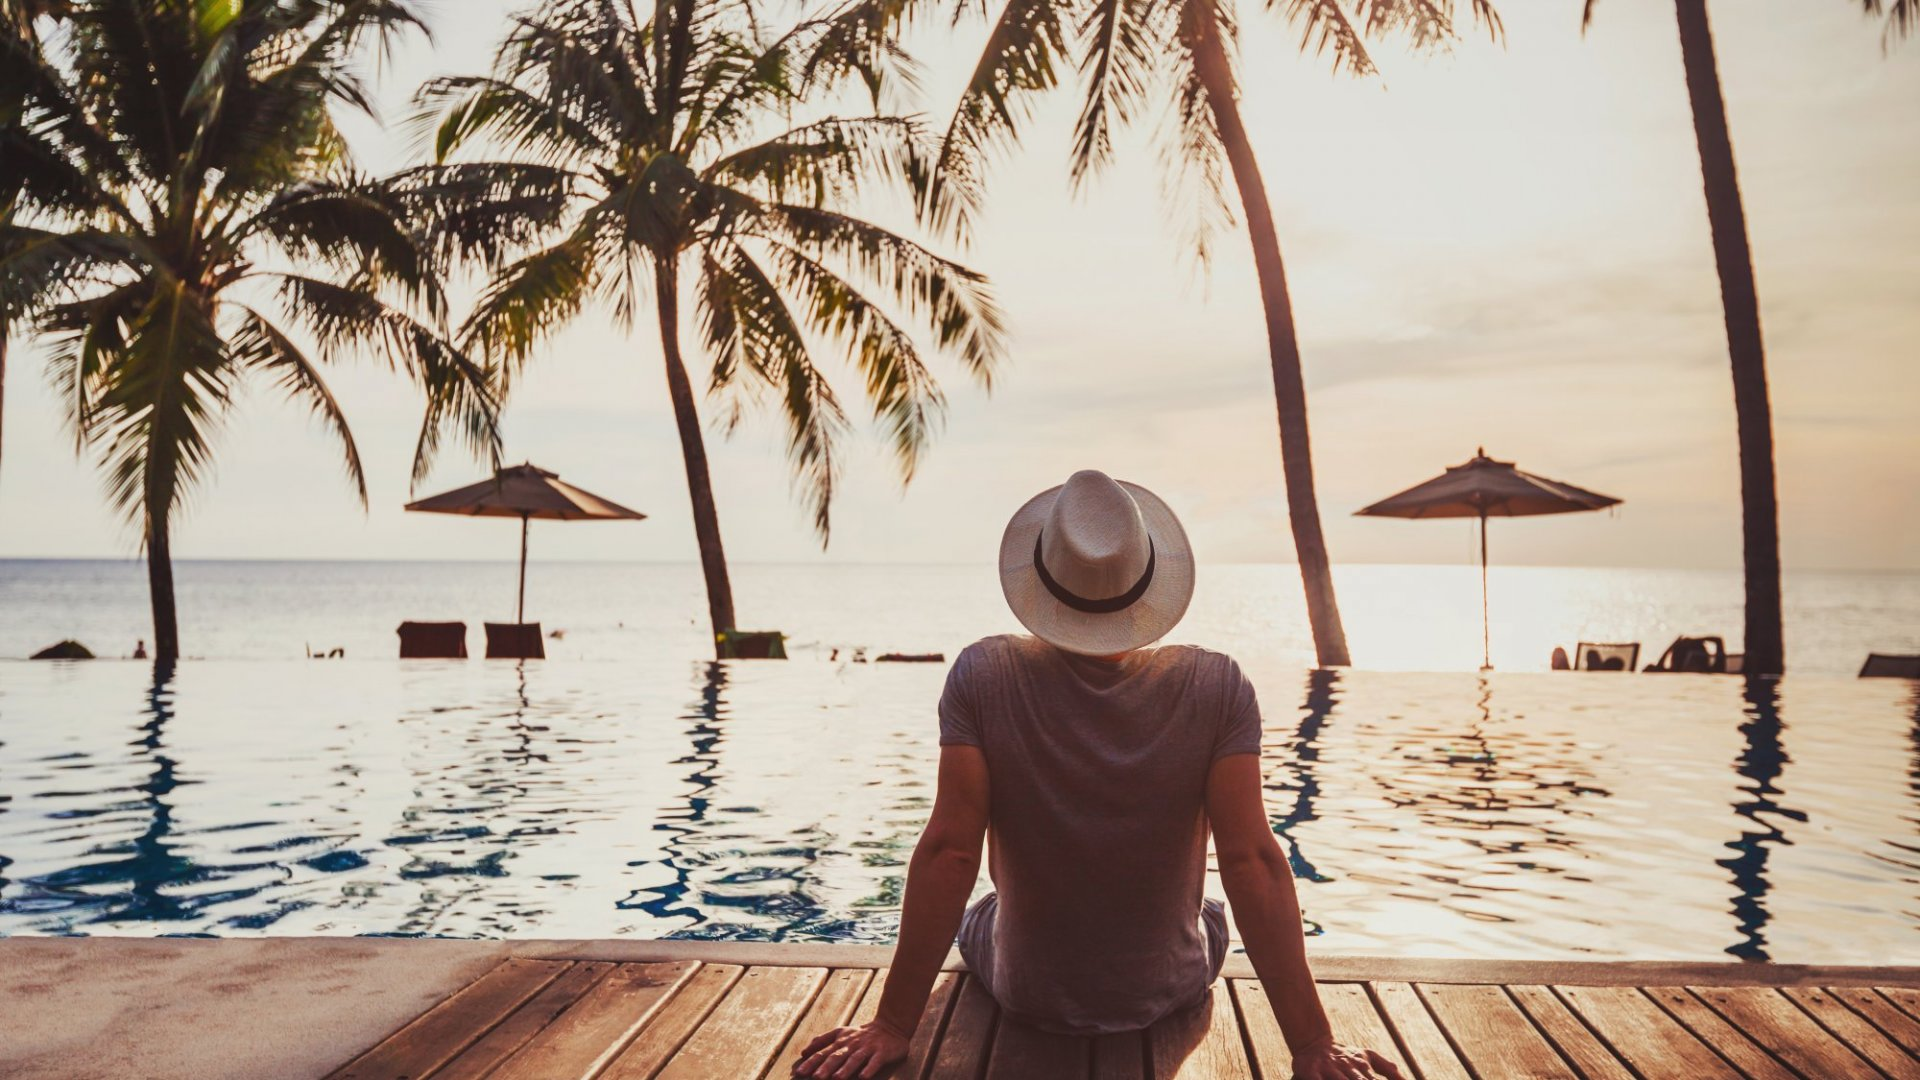 How to Realistically Implement an Unlimited Vacation Policy